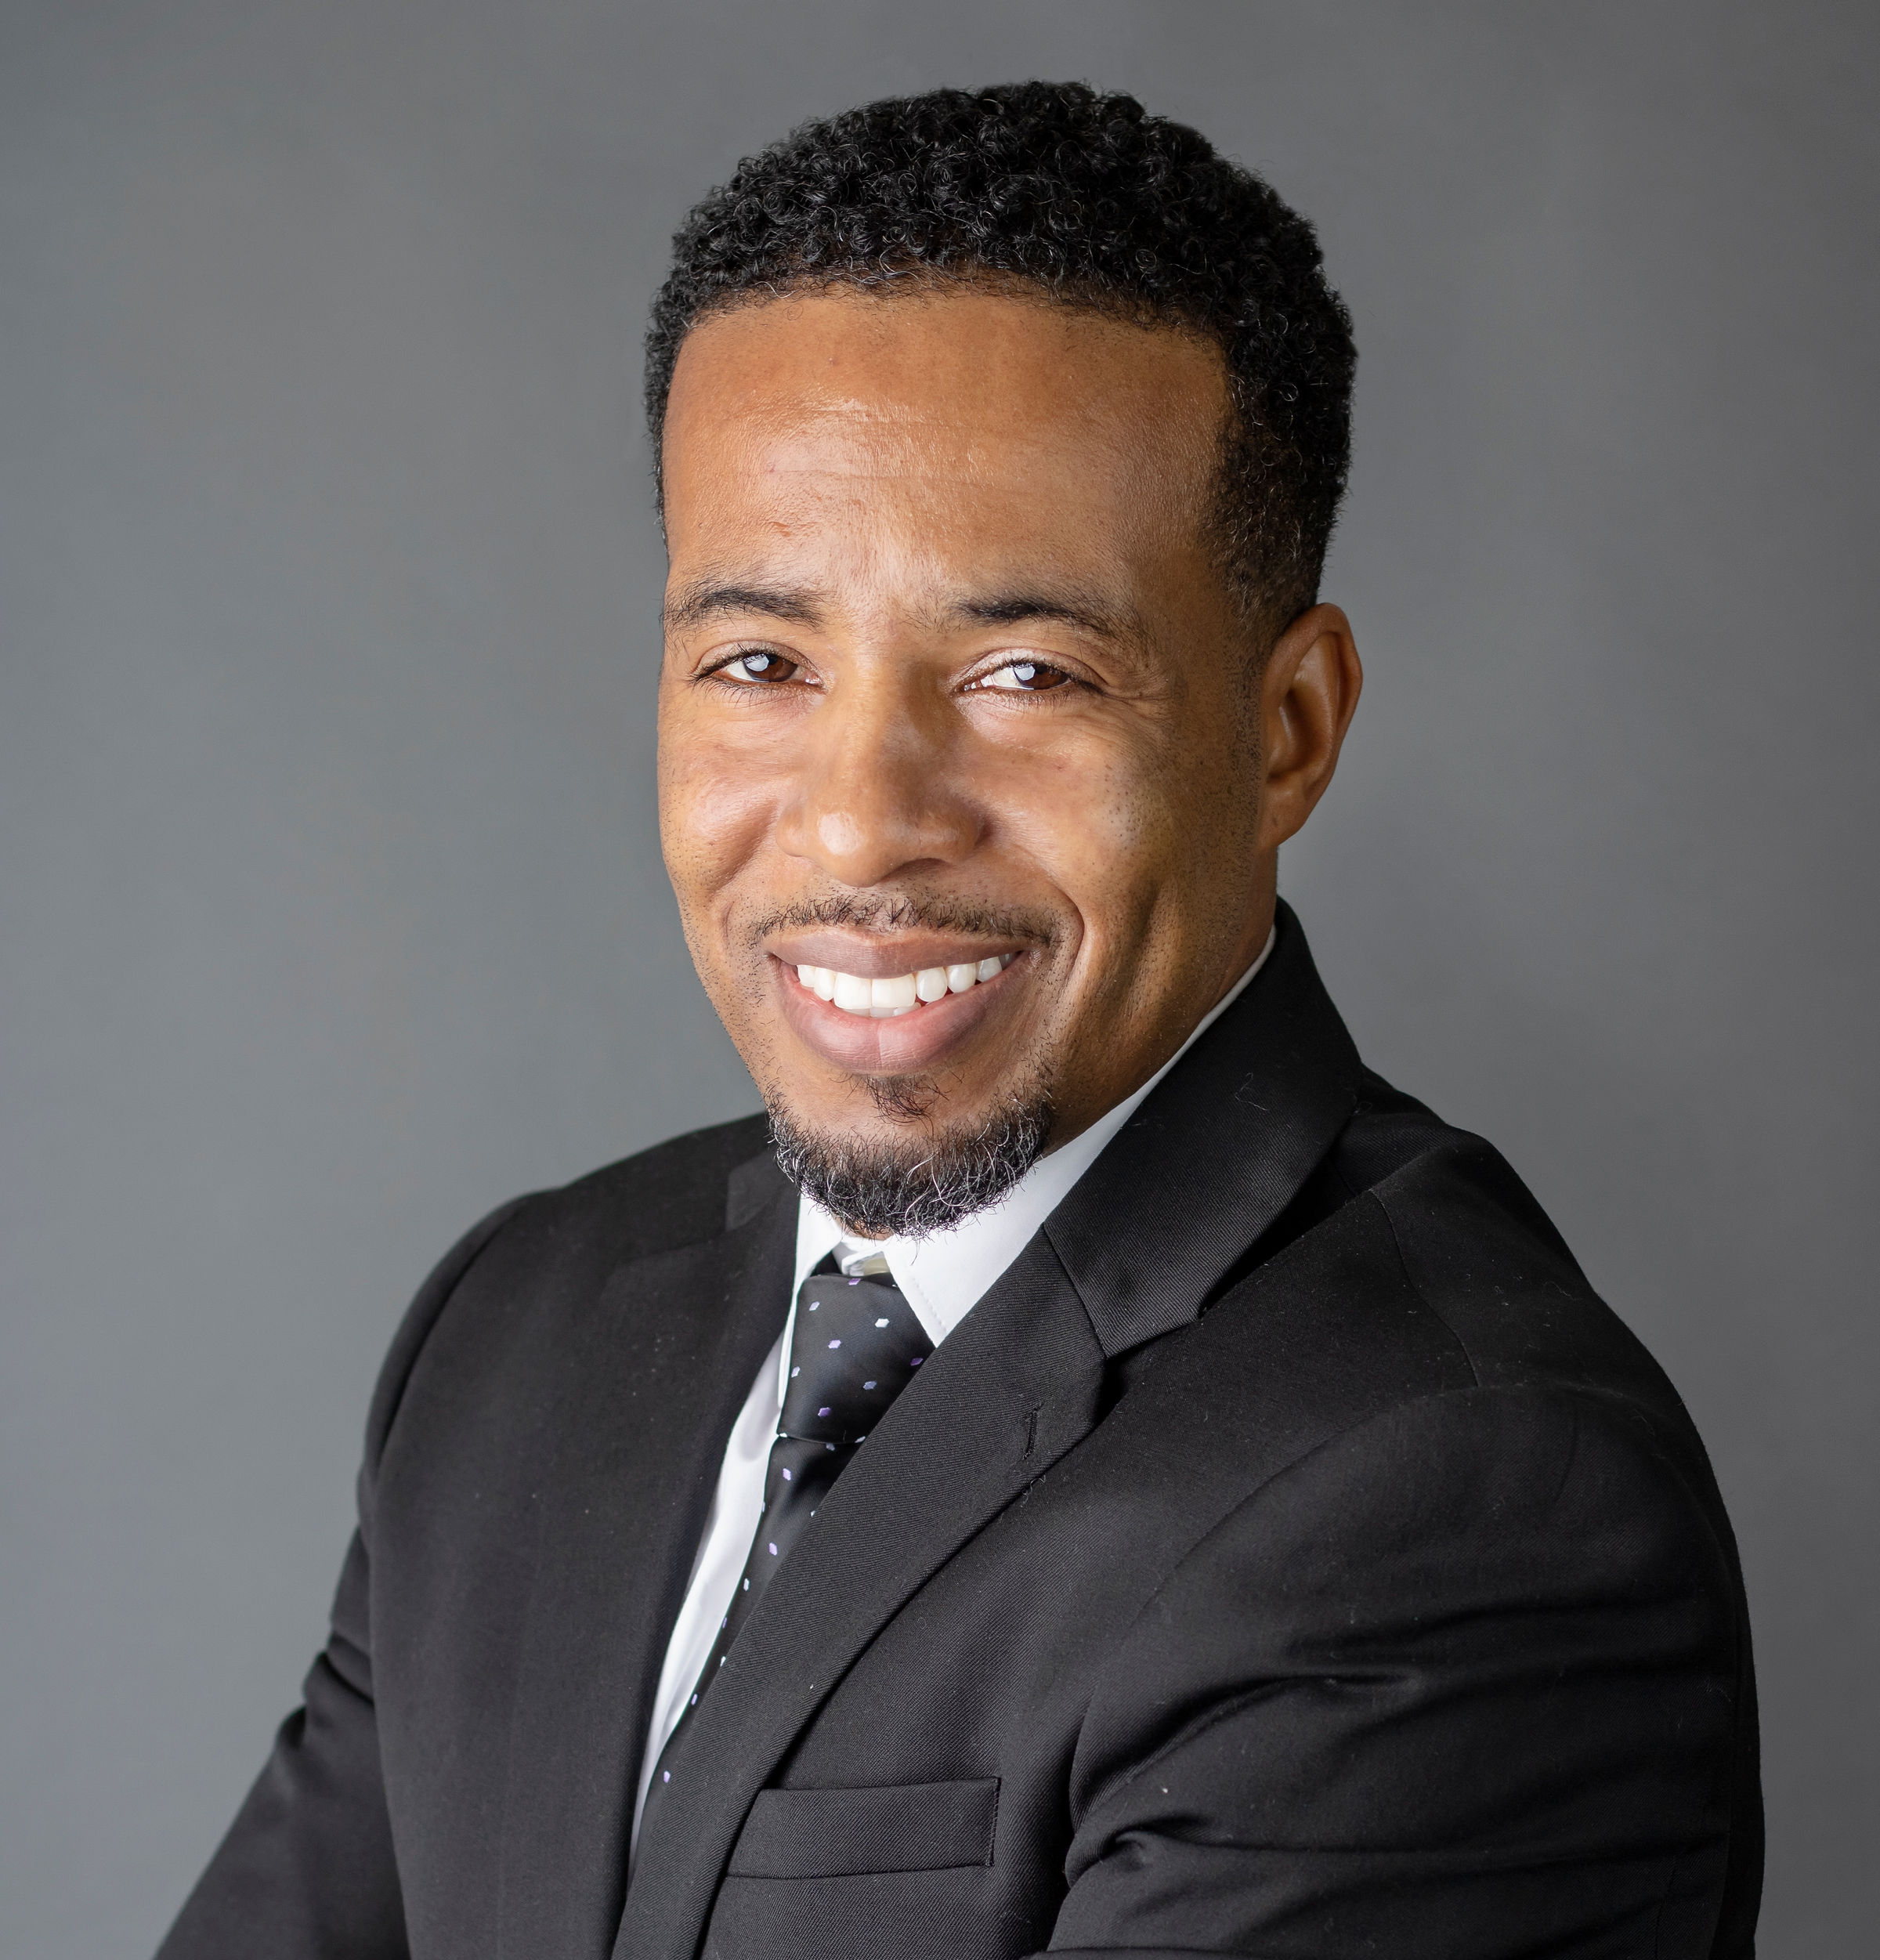 Photo of Desmon Martin, Director of Enforcement and Compliance